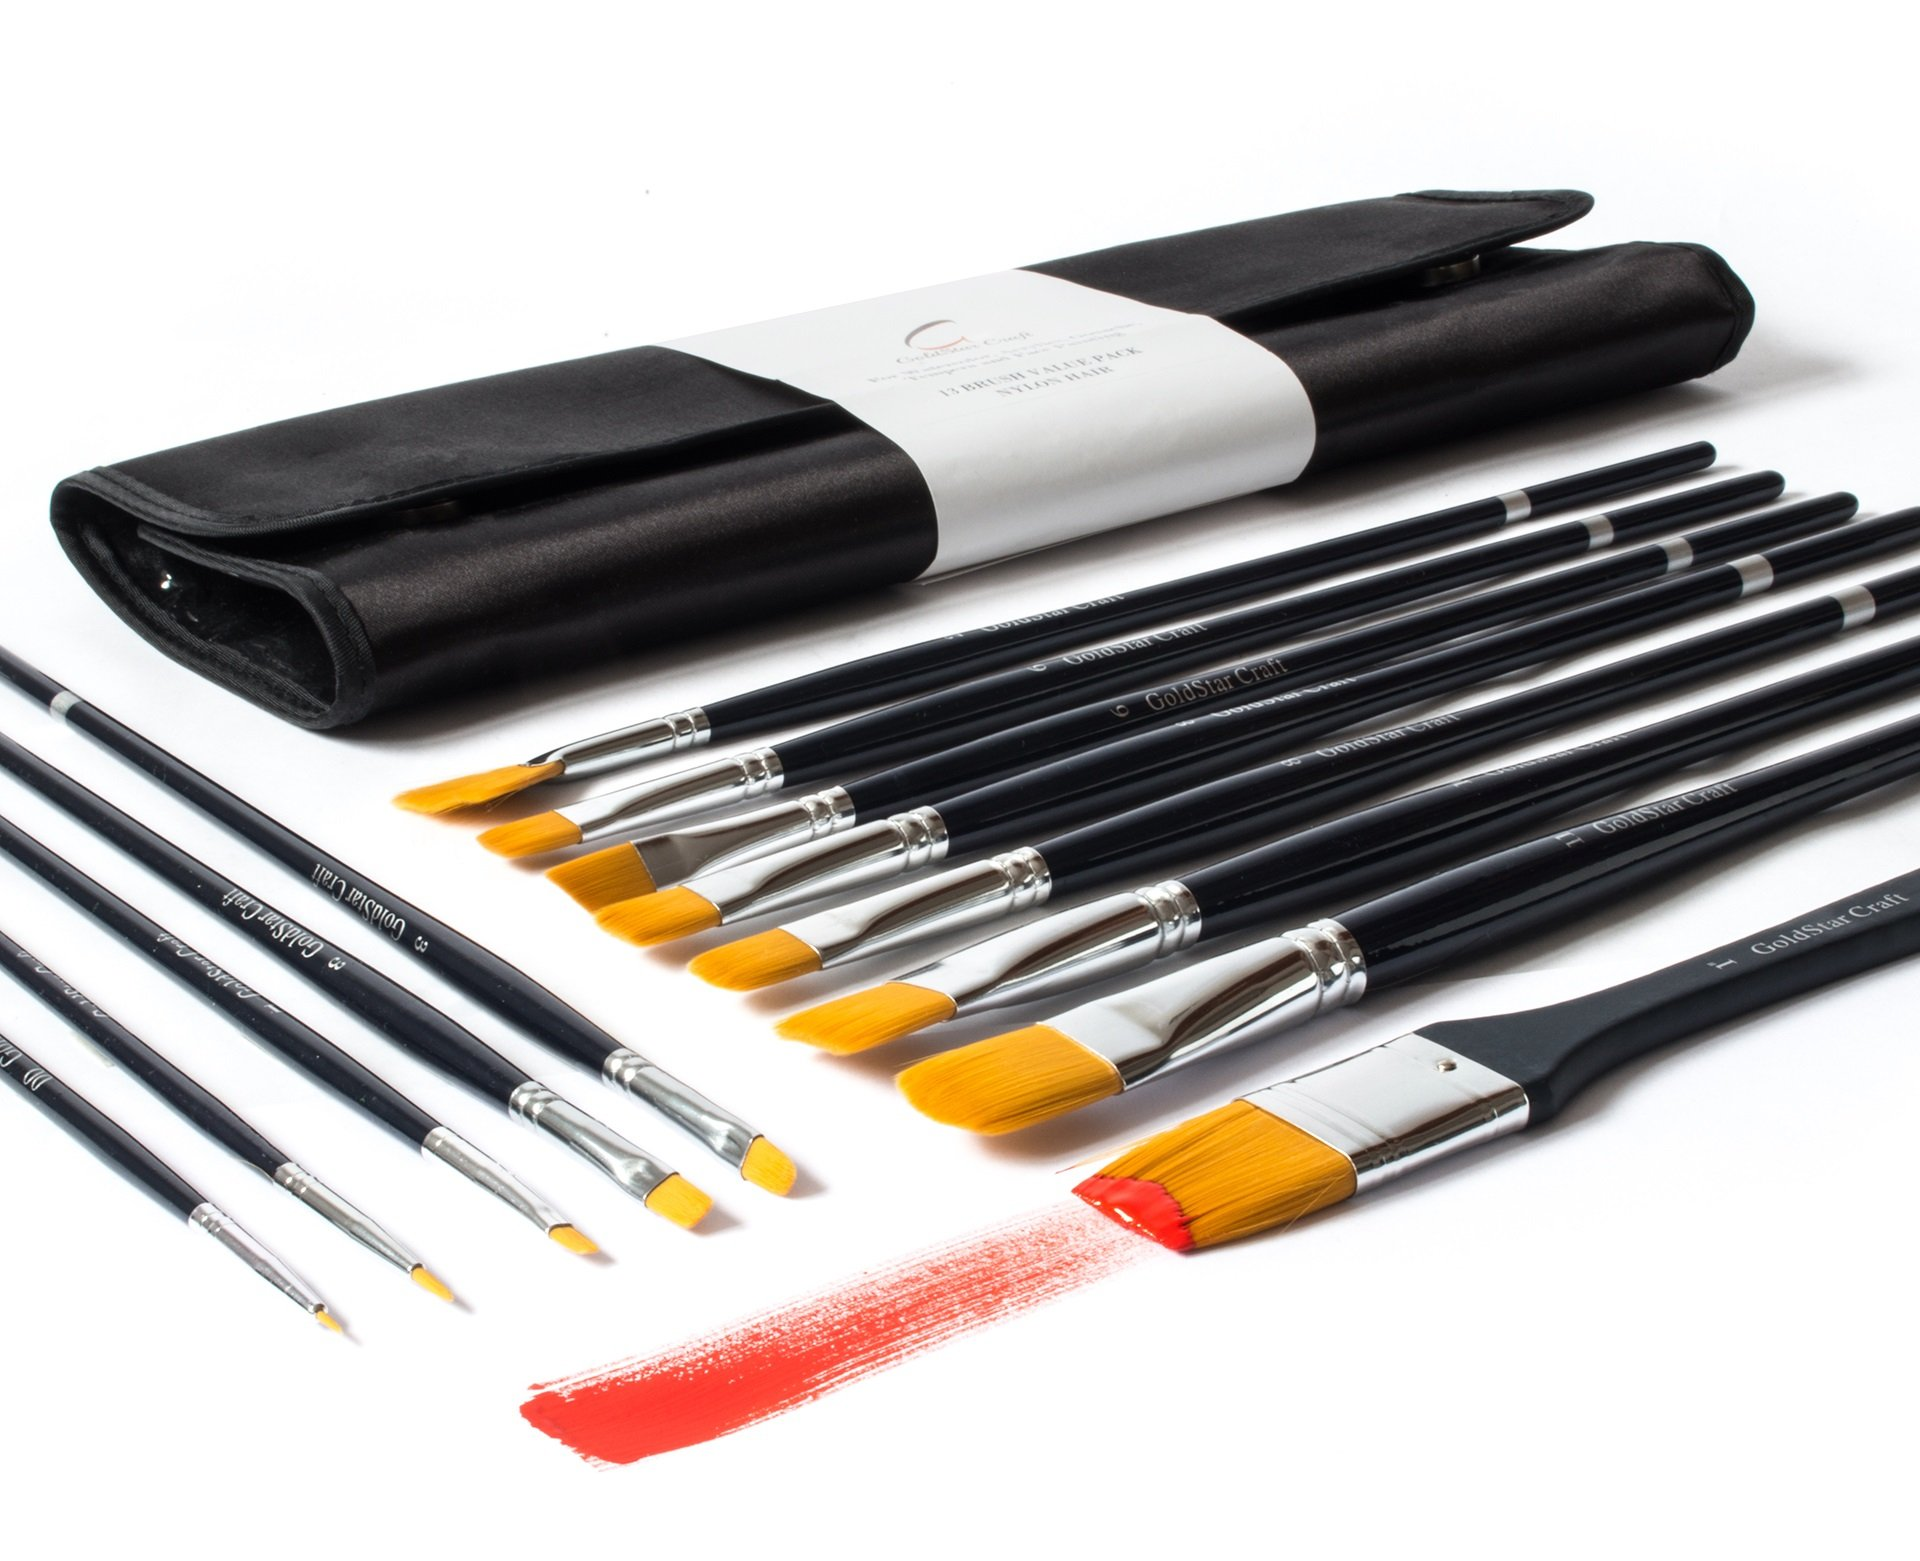 GoldStar Craft No Shedding 13pcs Paint Brush Set - Acrylic Face Painting & Watercolor Brushes that Hold their Shape! Best Artist Paintbrushes with Balanced Long Handle - Included Elegant Travel Case